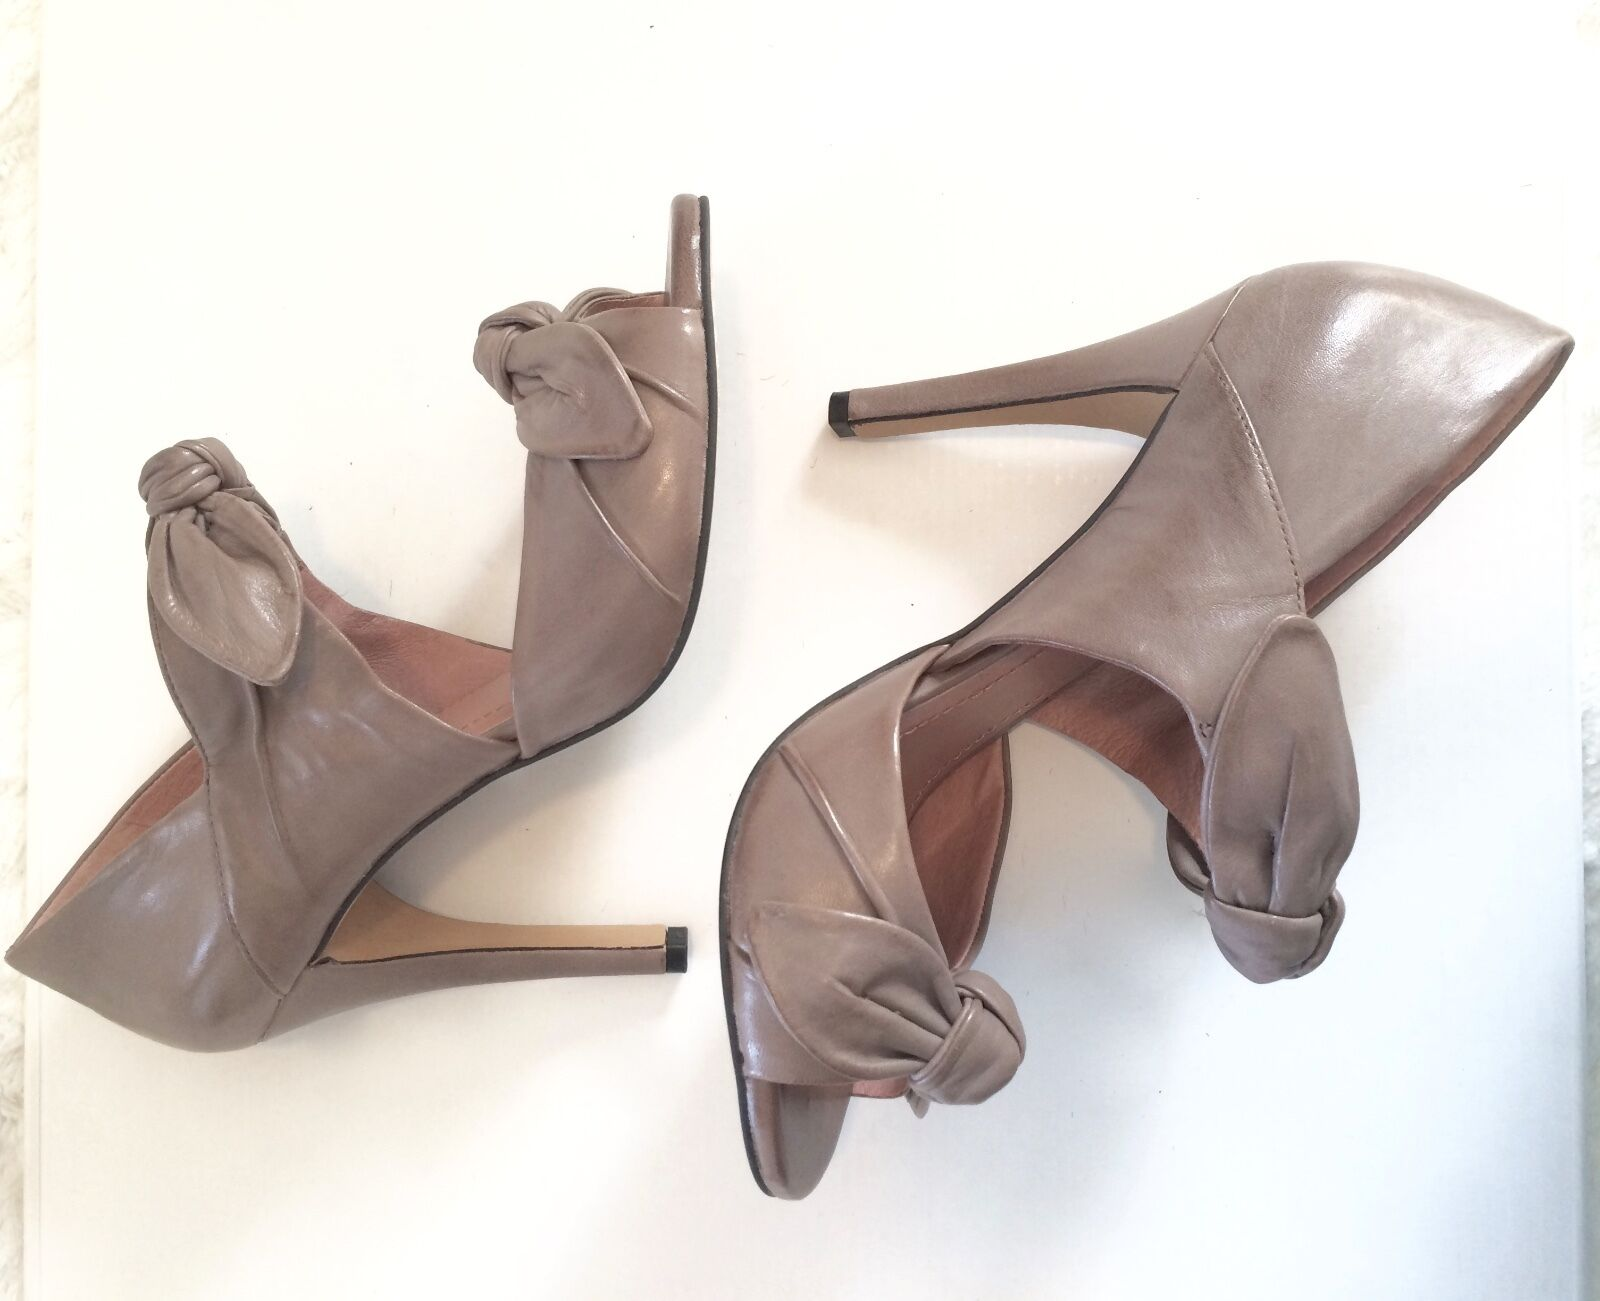 Vince Camuto Taupe Leder 4in. Heel with two bows across ankle & top of foot.